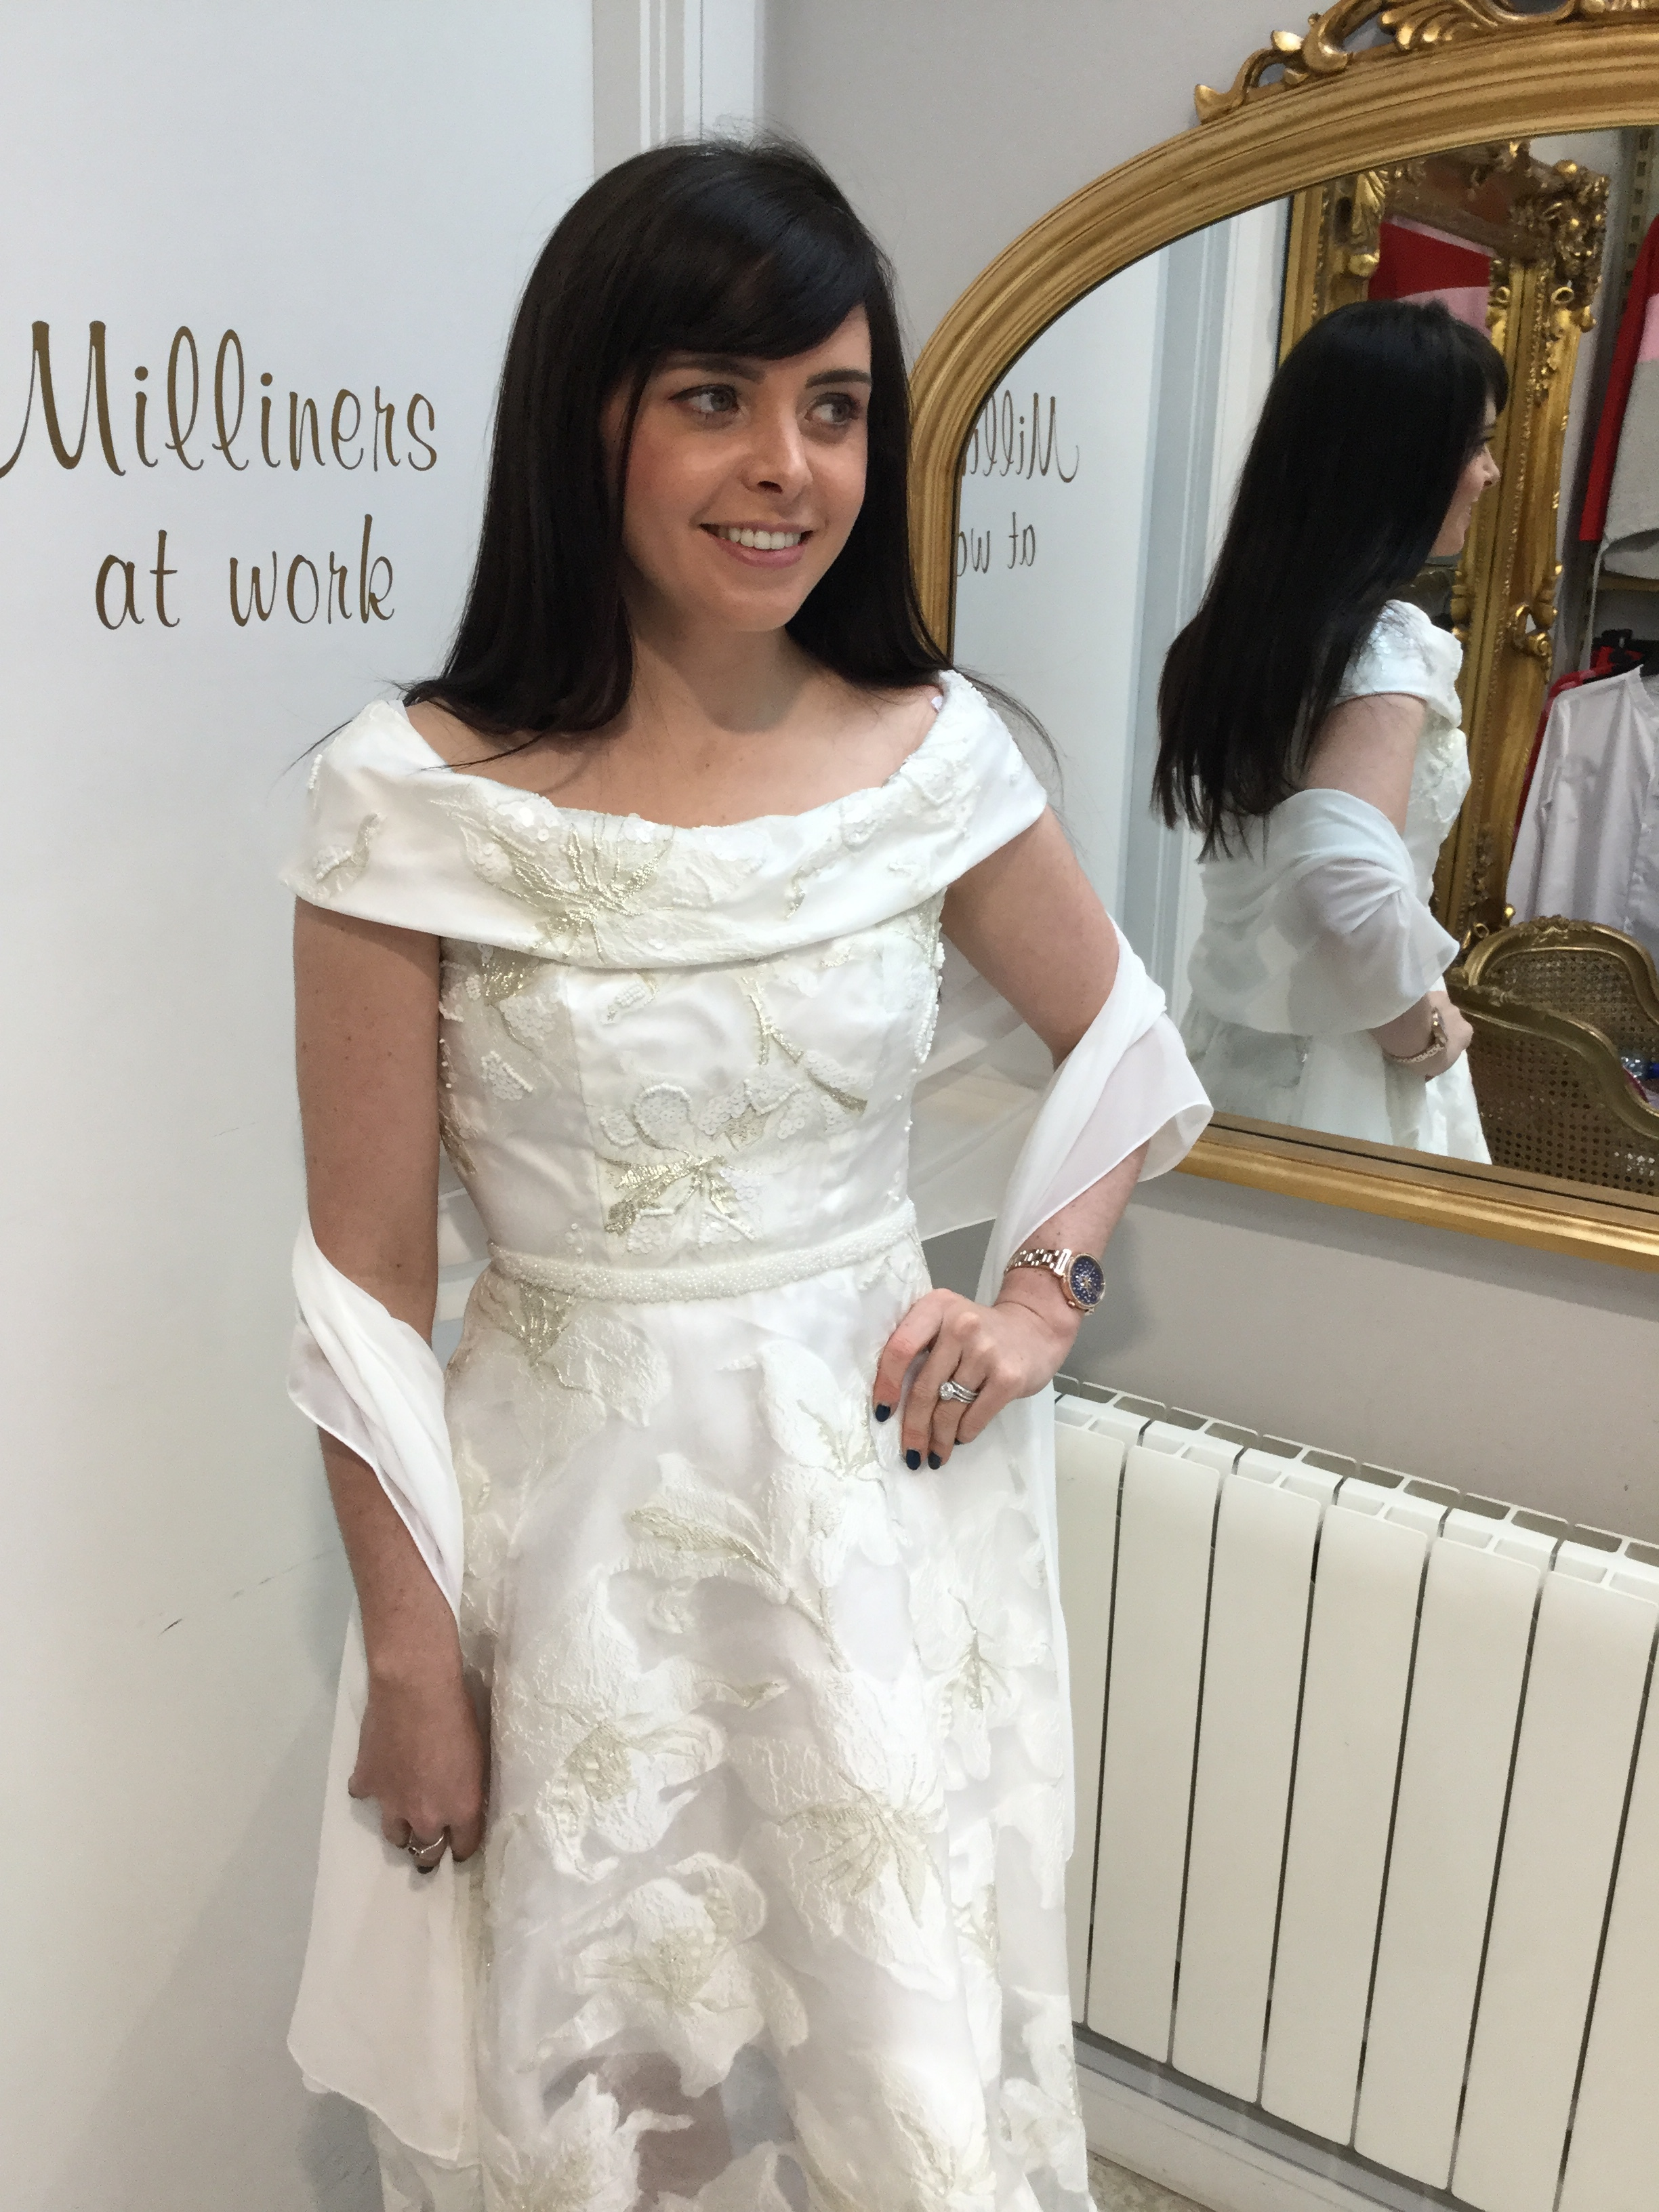 Roll Collar Dress in Stunning Ivory with Beaded waist and Silver Acents